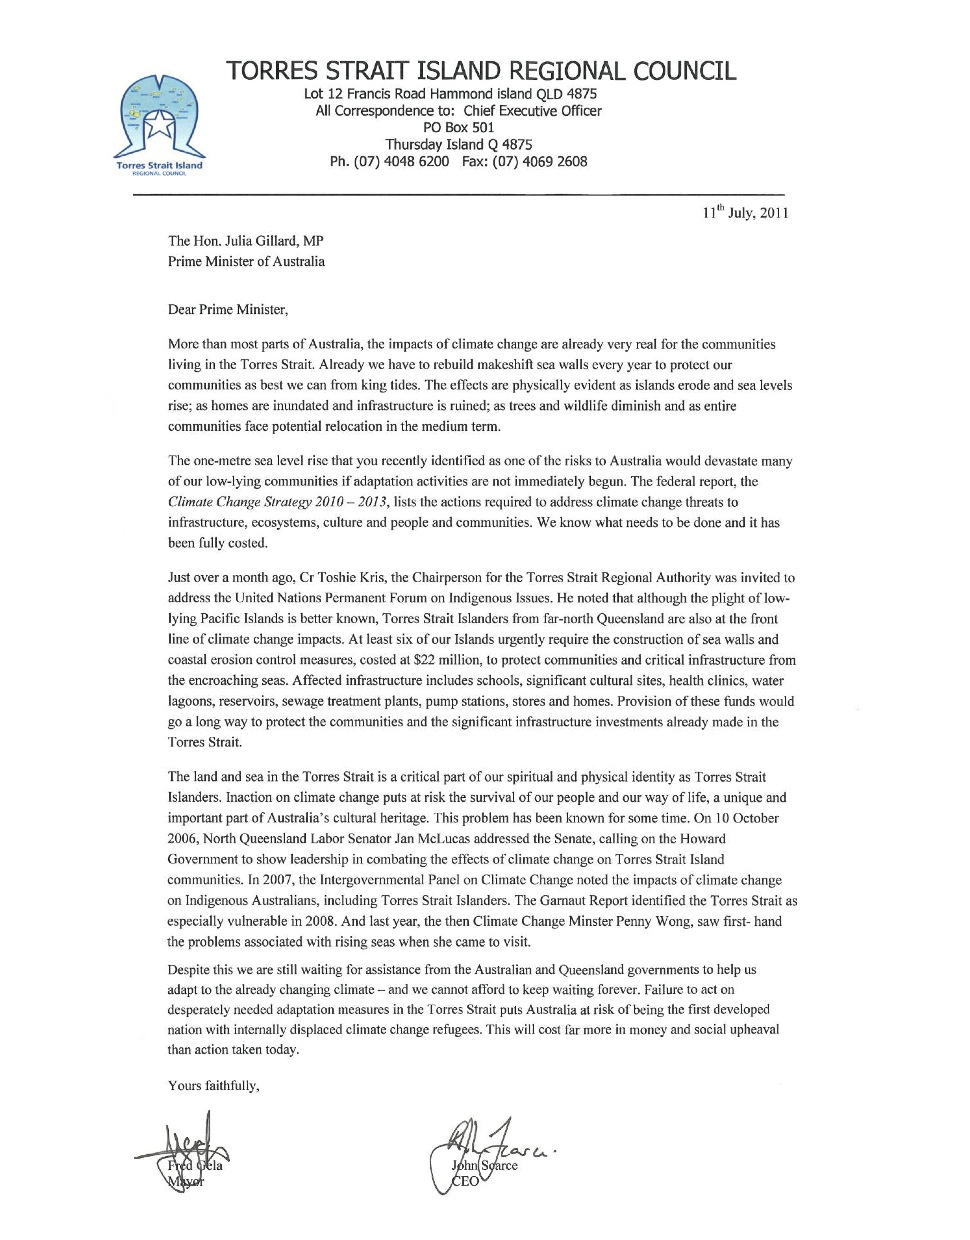 External Link: Read The Torres Strait Council's Letter To The Pm